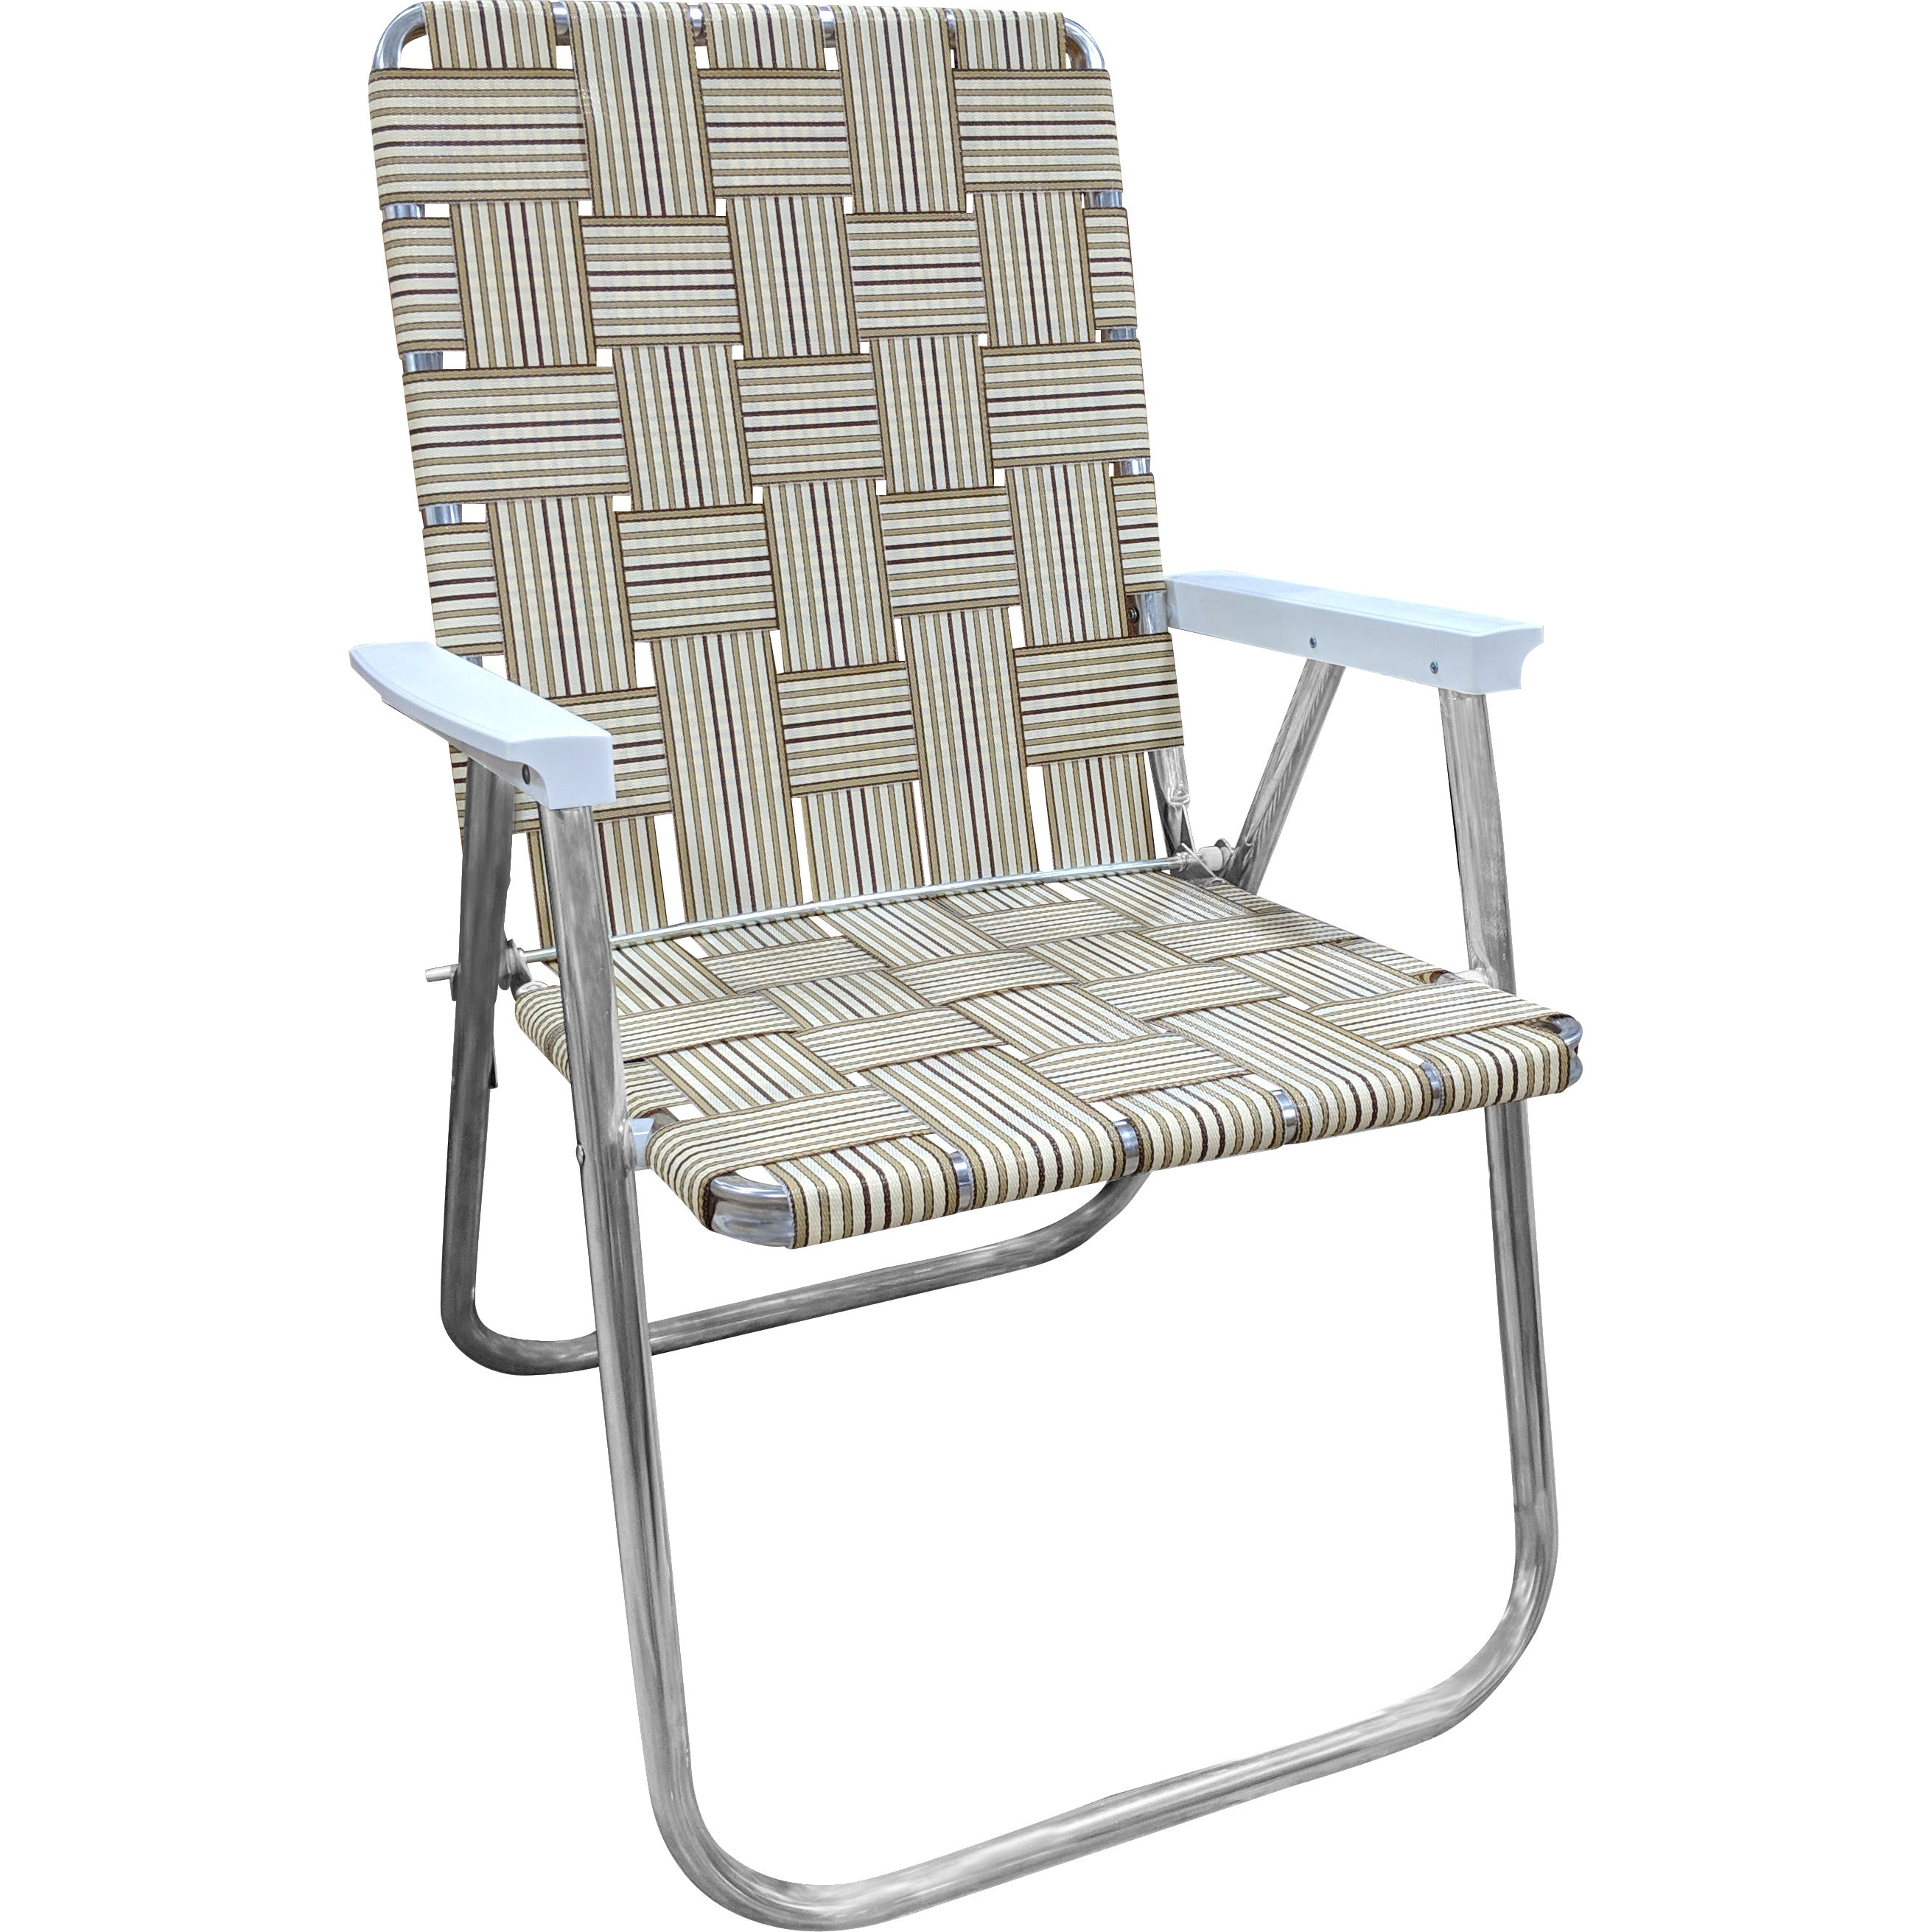 Superb Tan Stripe Classic Lawn Chair Download Free Architecture Designs Scobabritishbridgeorg